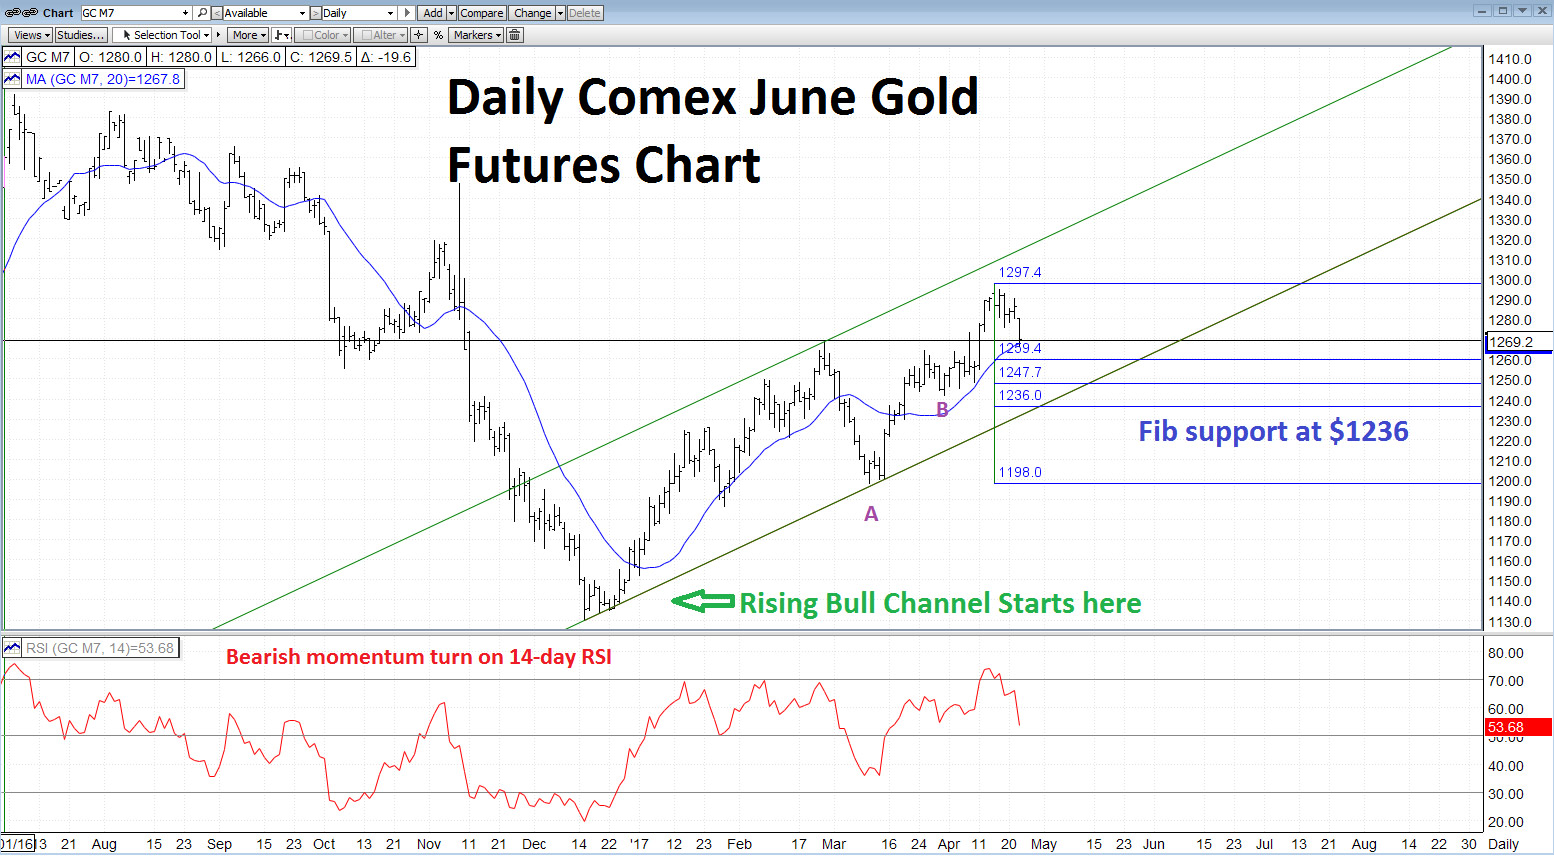 3 Things Traders Can Learn From The Gold Chart Now